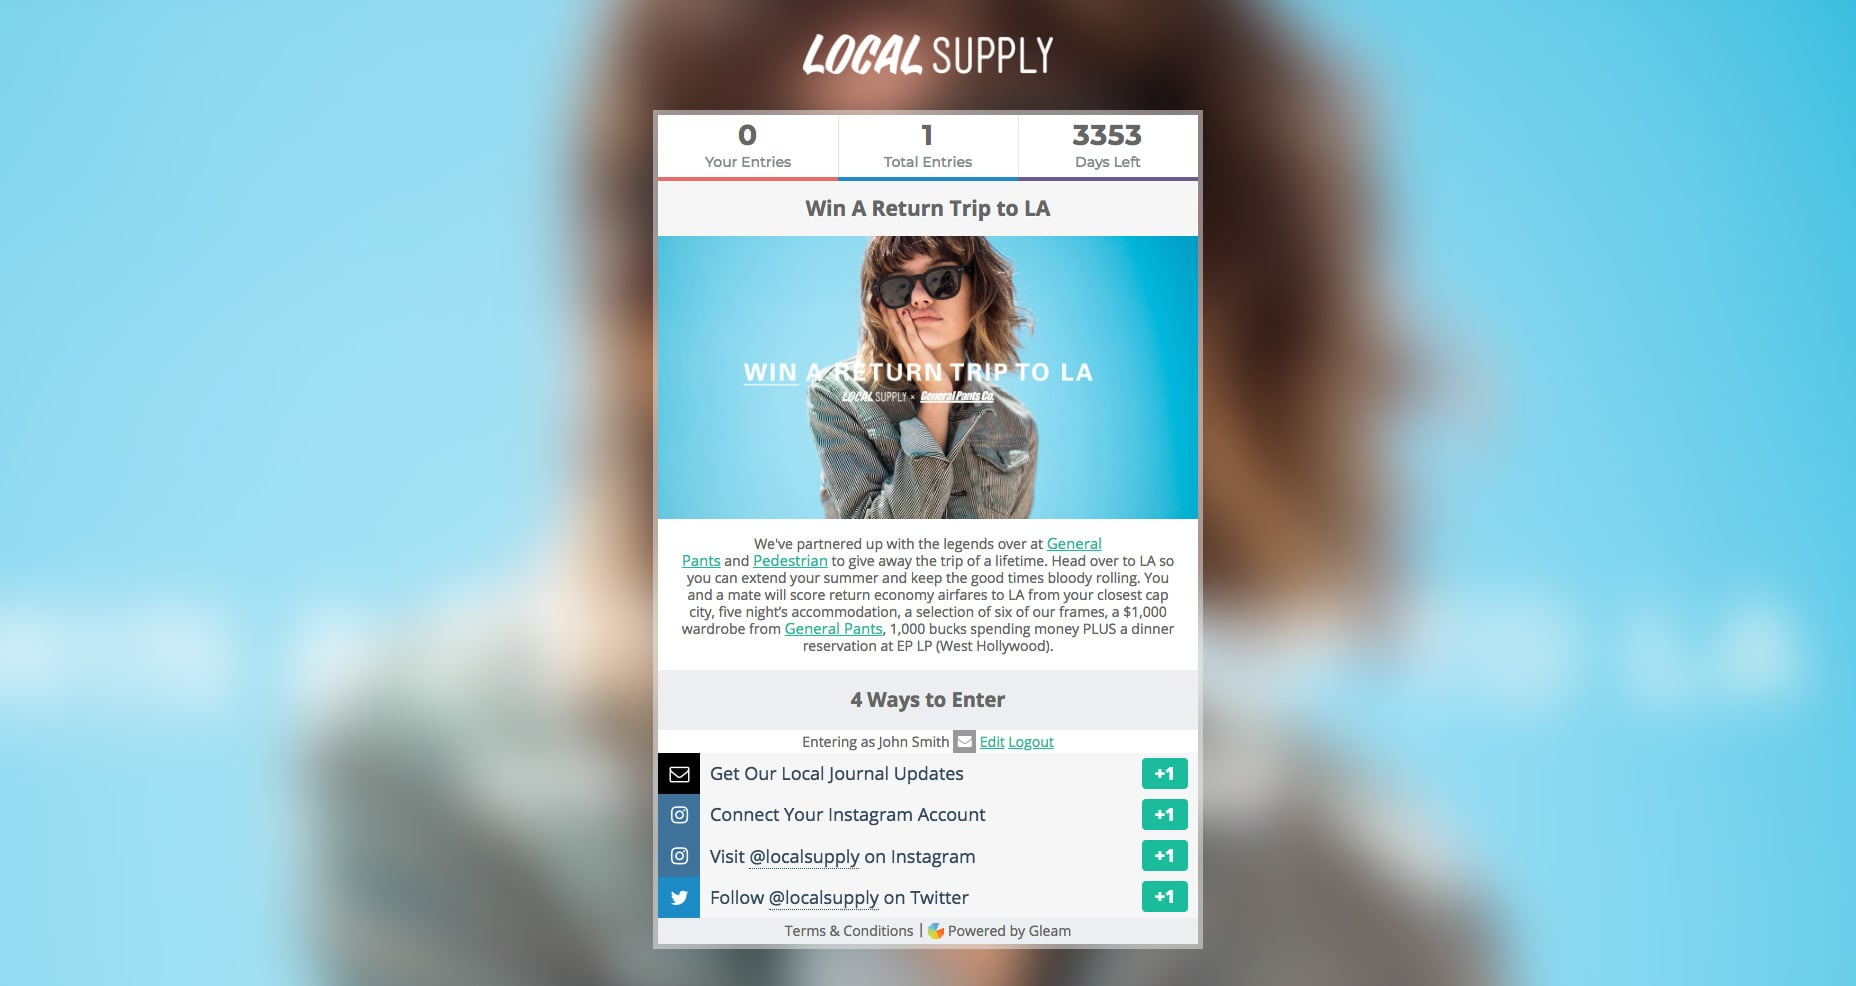 Run Gleam Giveaways For Your Blog in a Hosted Landing Page